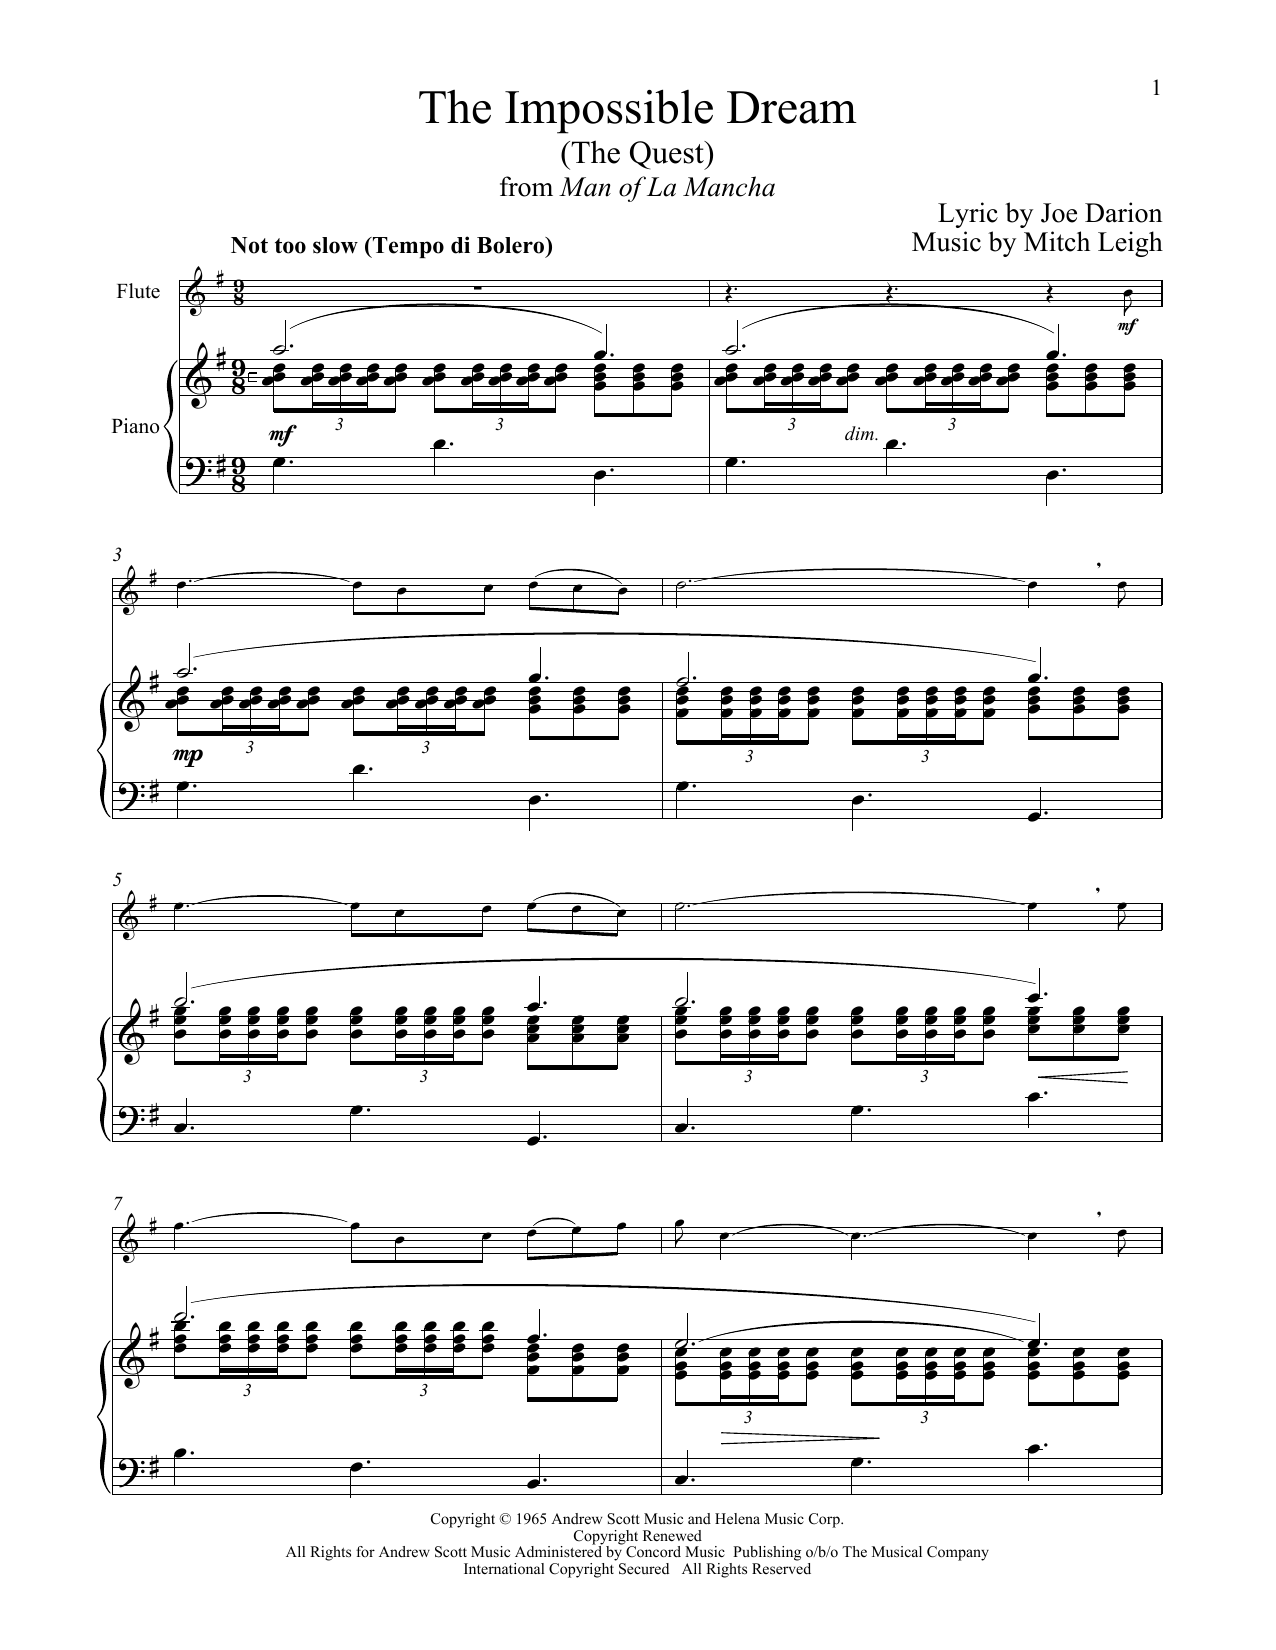 Mitch Leigh The Impossible Dream (The Quest) (from Man Of La Mancha) sheet music notes and chords